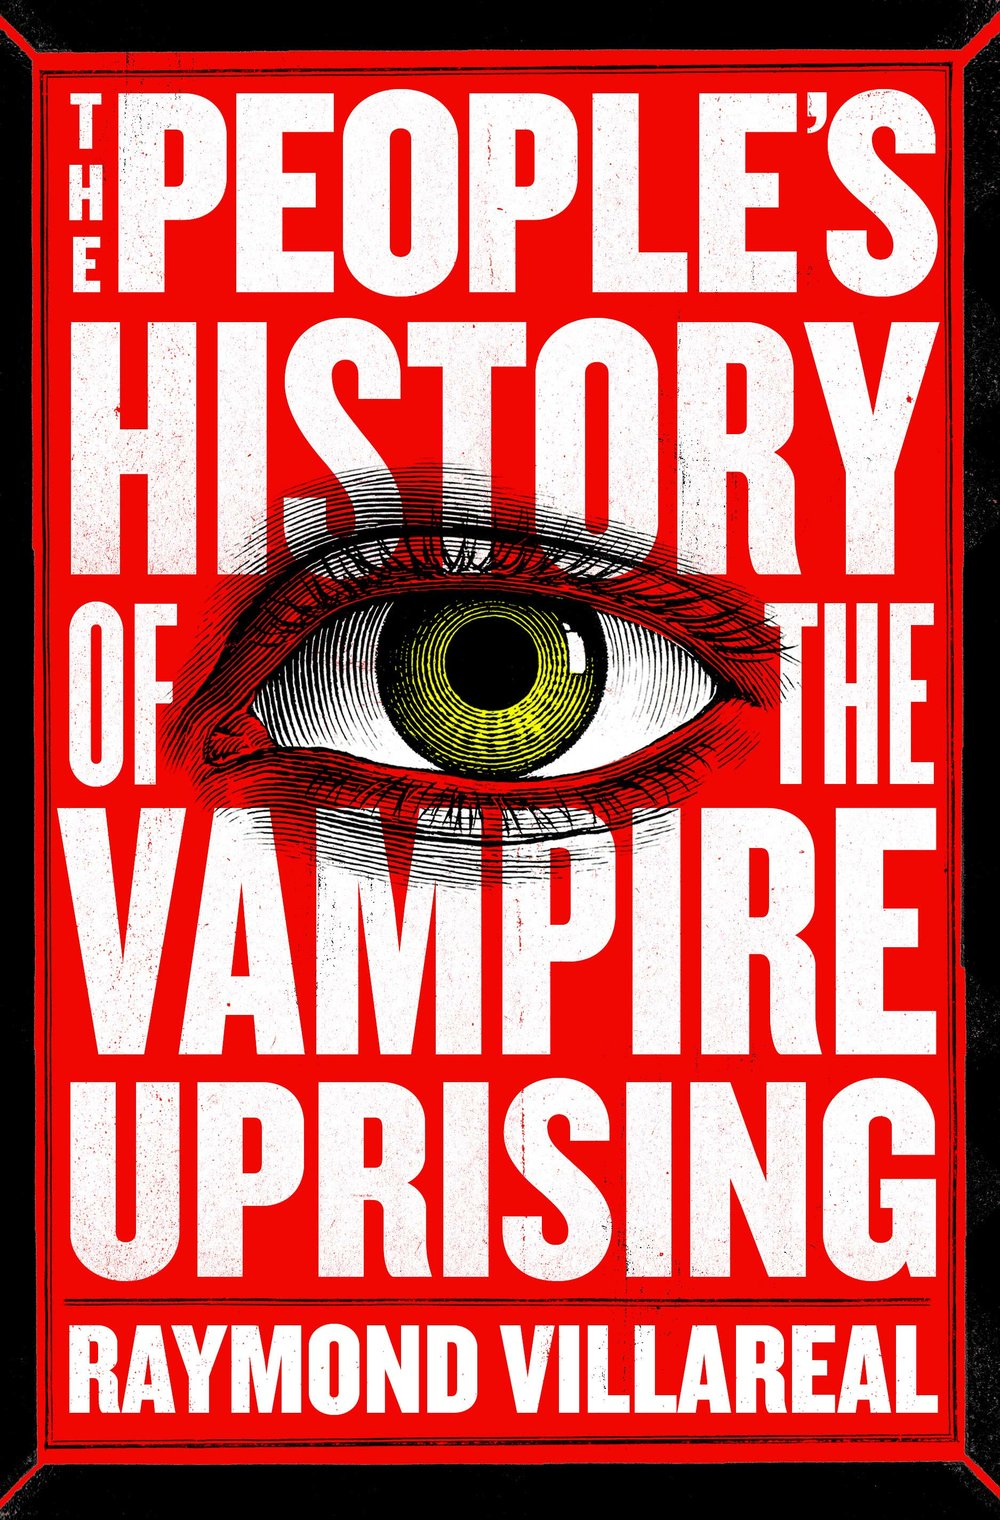 A People's History of the Vampire Uprising - On Sale June 5, 2018Published by Little Brown and Company's Mulholland Books